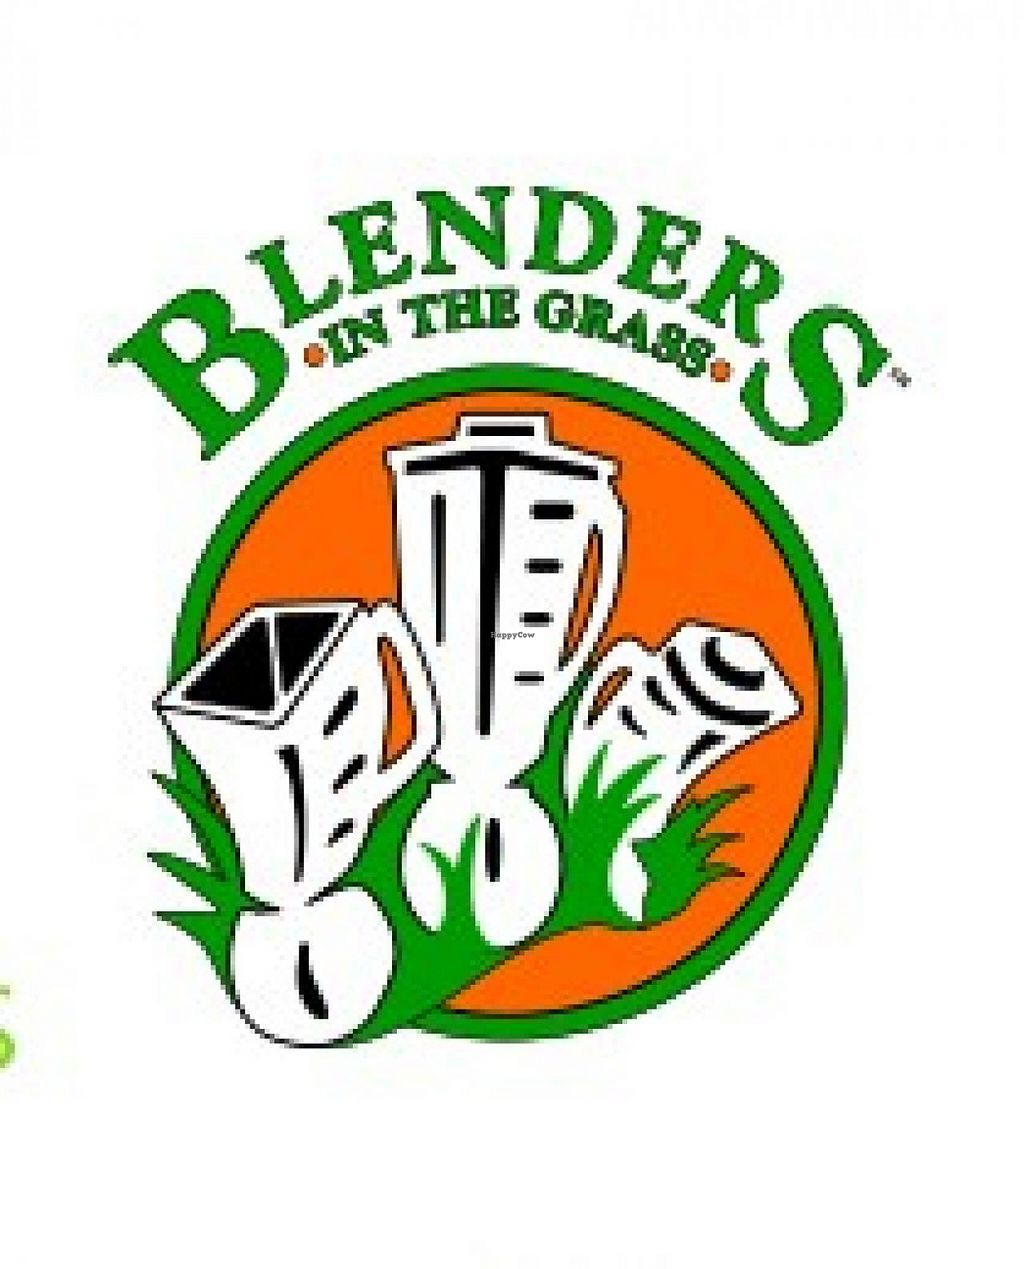 """Photo of Blenders in the Grass  by <a href=""""/members/profile/community"""">community</a> <br/>Blenders in the Grass <br/> November 30, 2014  - <a href='/contact/abuse/image/53444/86769'>Report</a>"""